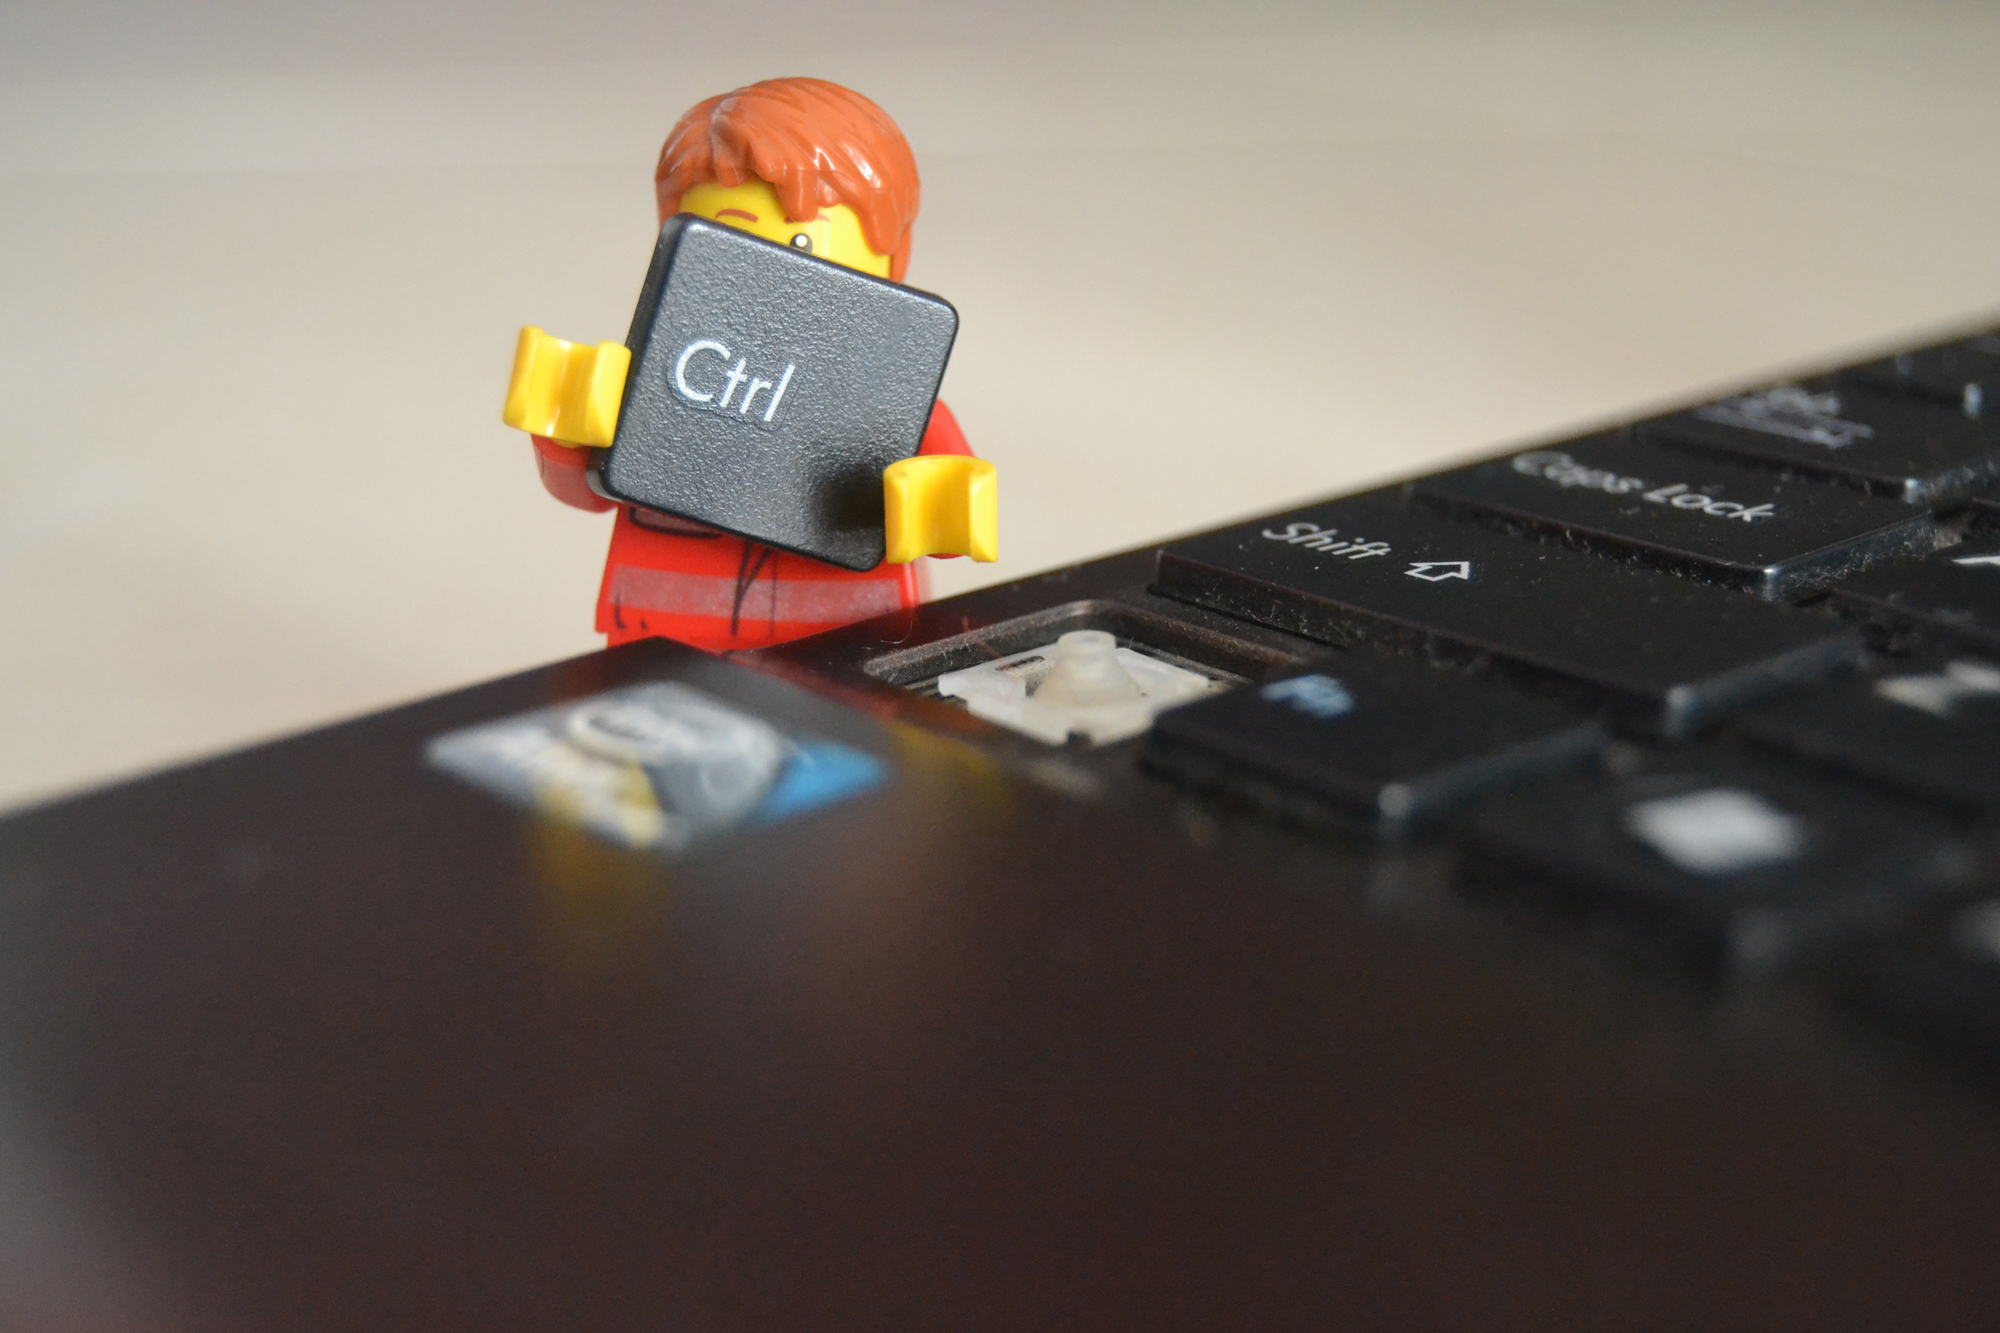 Onsite and Remote IT support